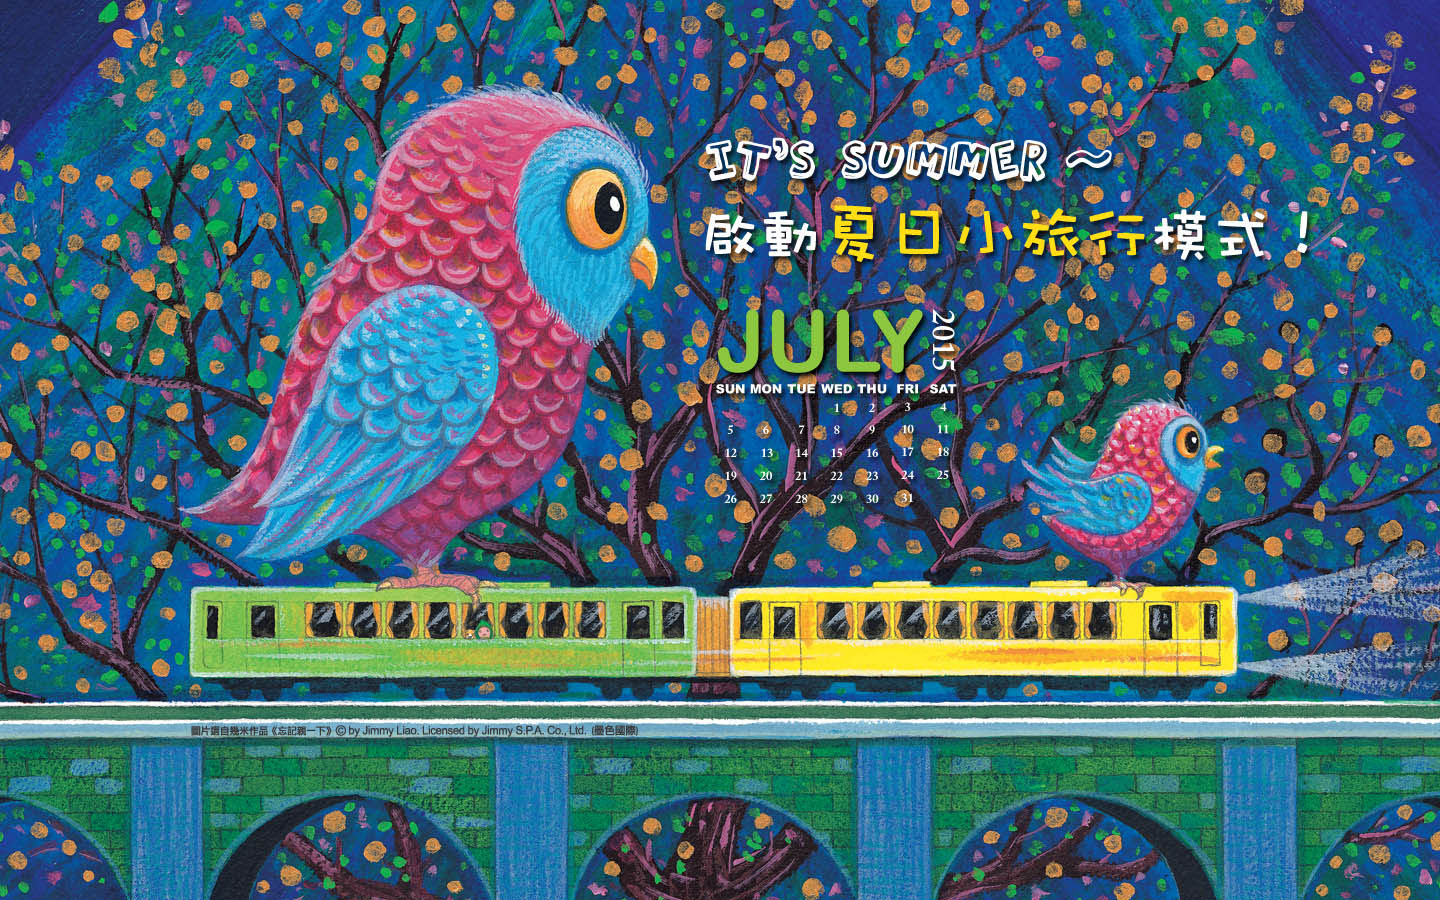 KB - Jimmy_artwork_July_2015_calendar_2 - 猫猫壁纸酷 wallcoo.com ...